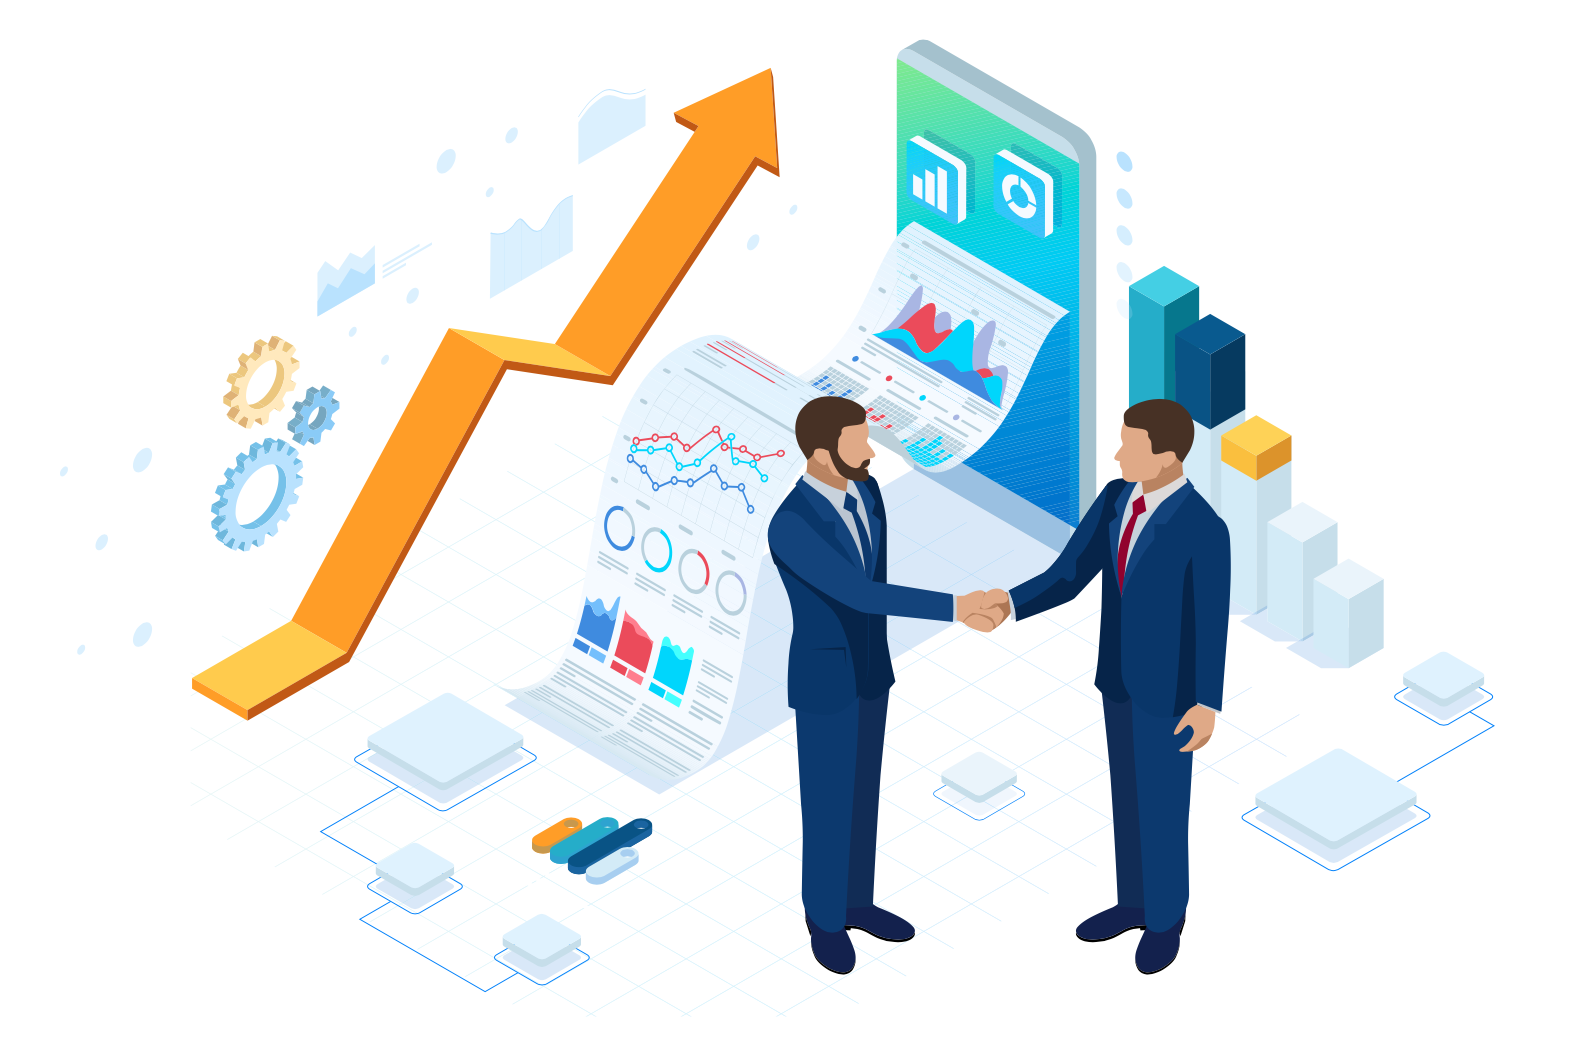 For B2B companies, a strong B2B social media presence will help you to grow your visibility building trust & credibility in your business to help you win new customers.